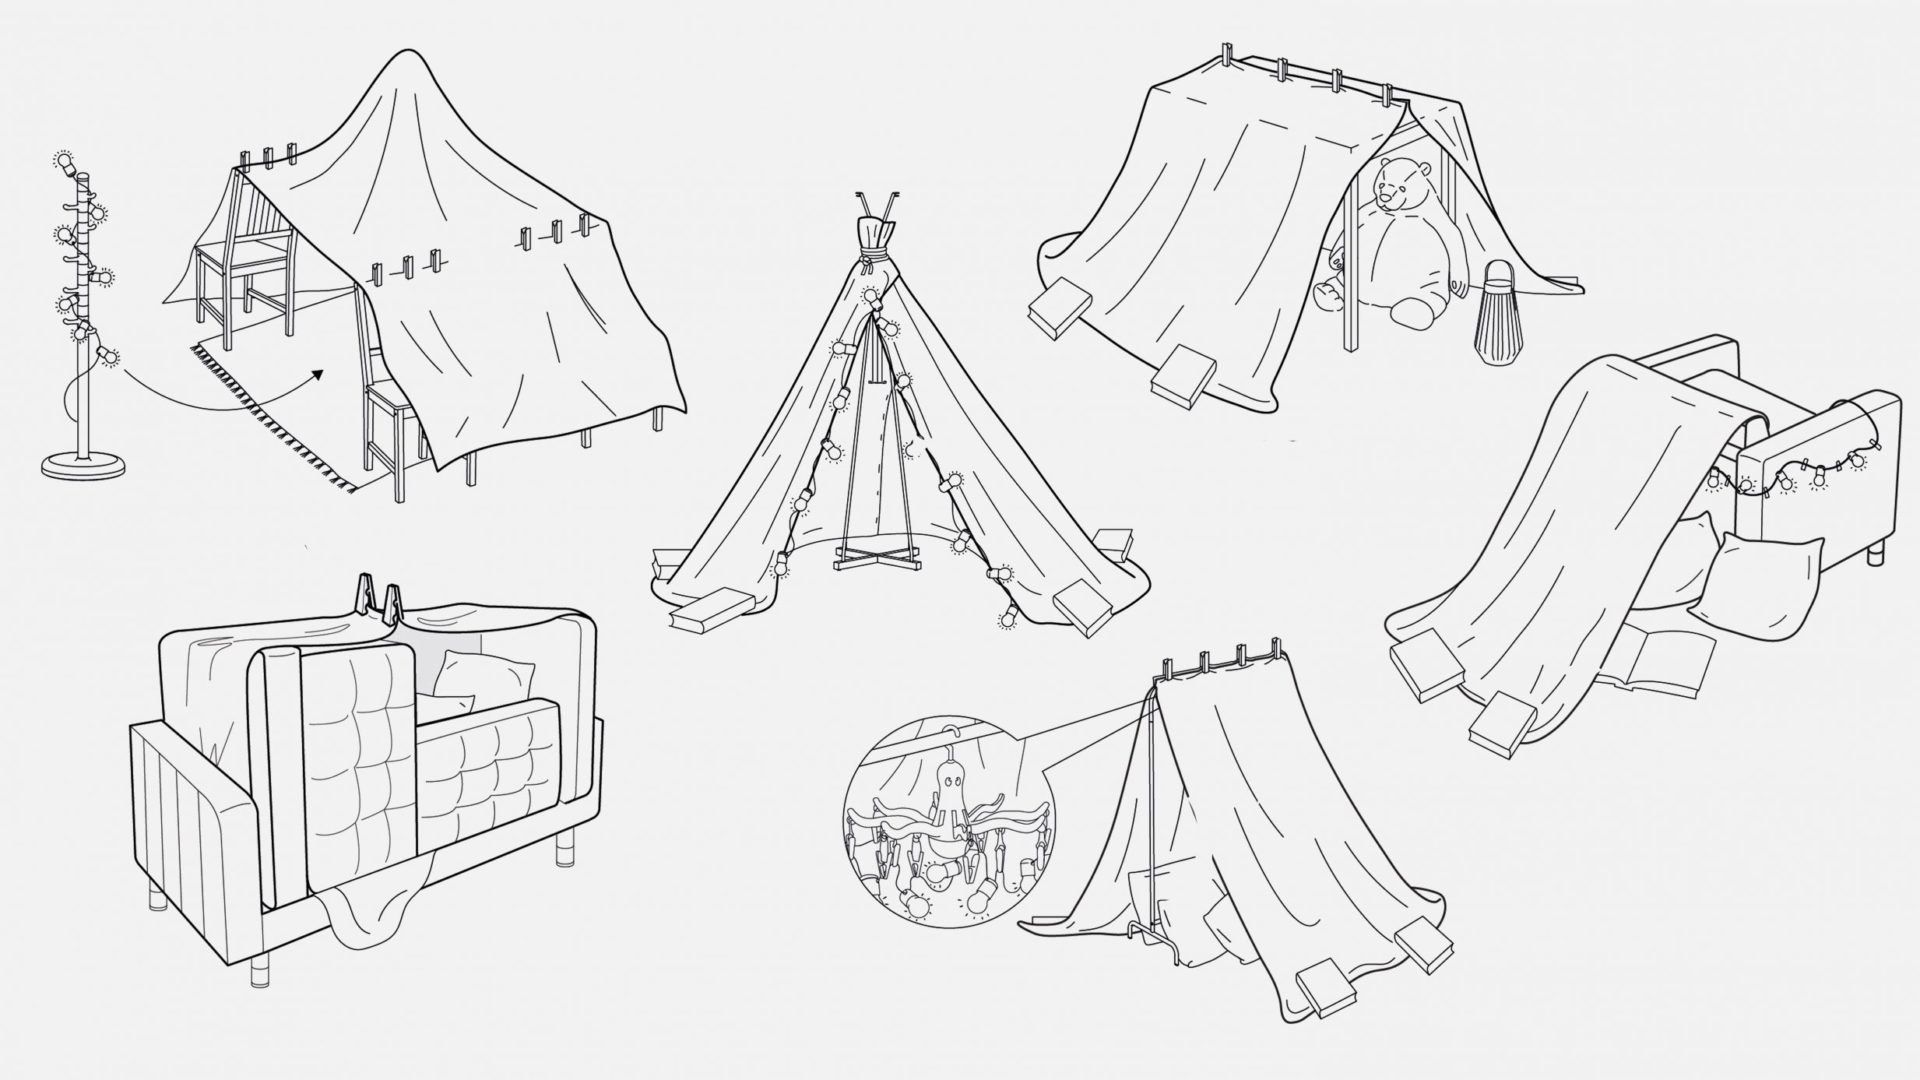 build pillow forts